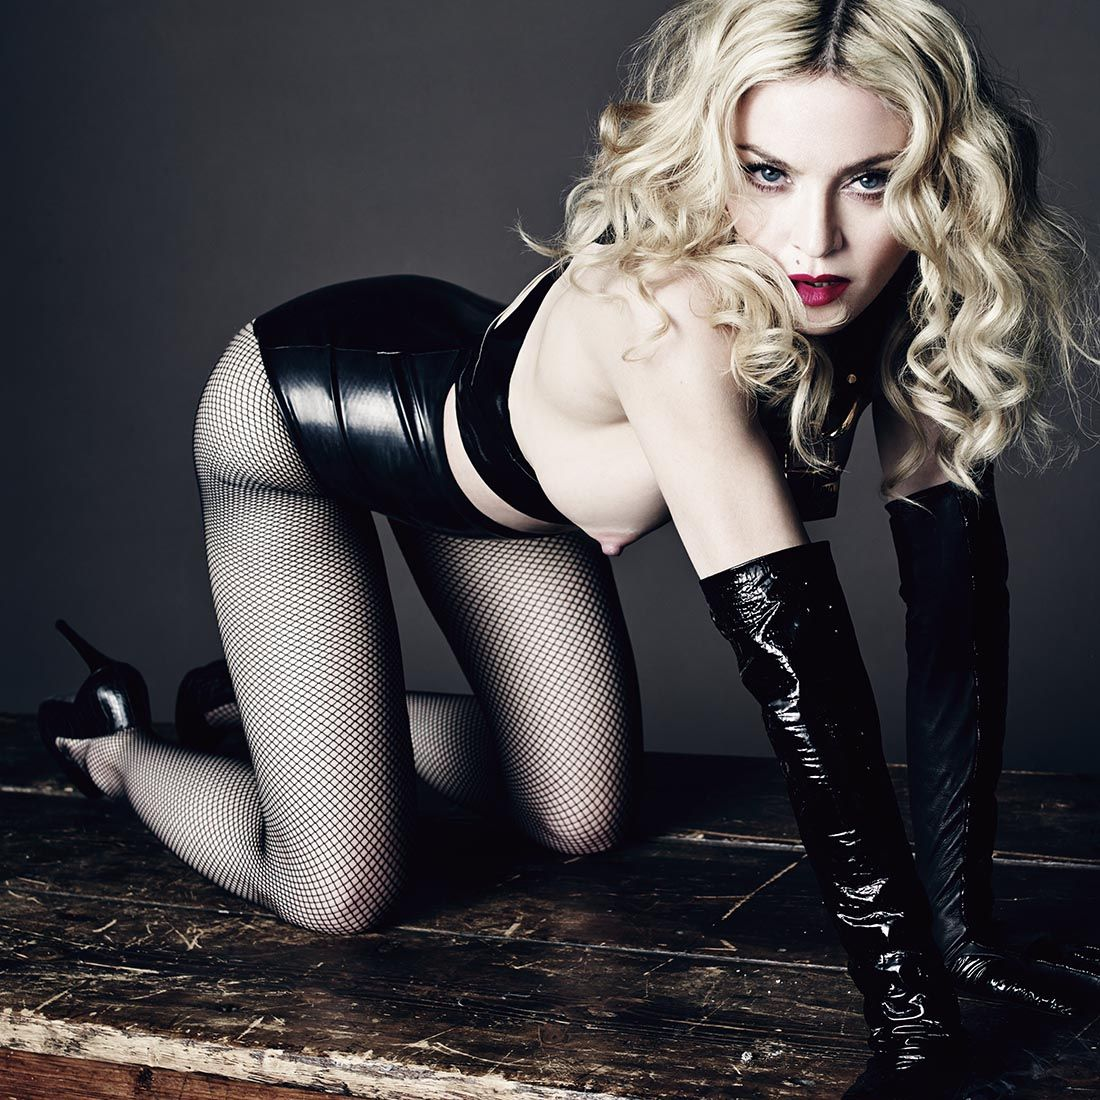 20140516-pictures-madonna-uomo-vogue-tom-munro-spread-hq-06.jpg